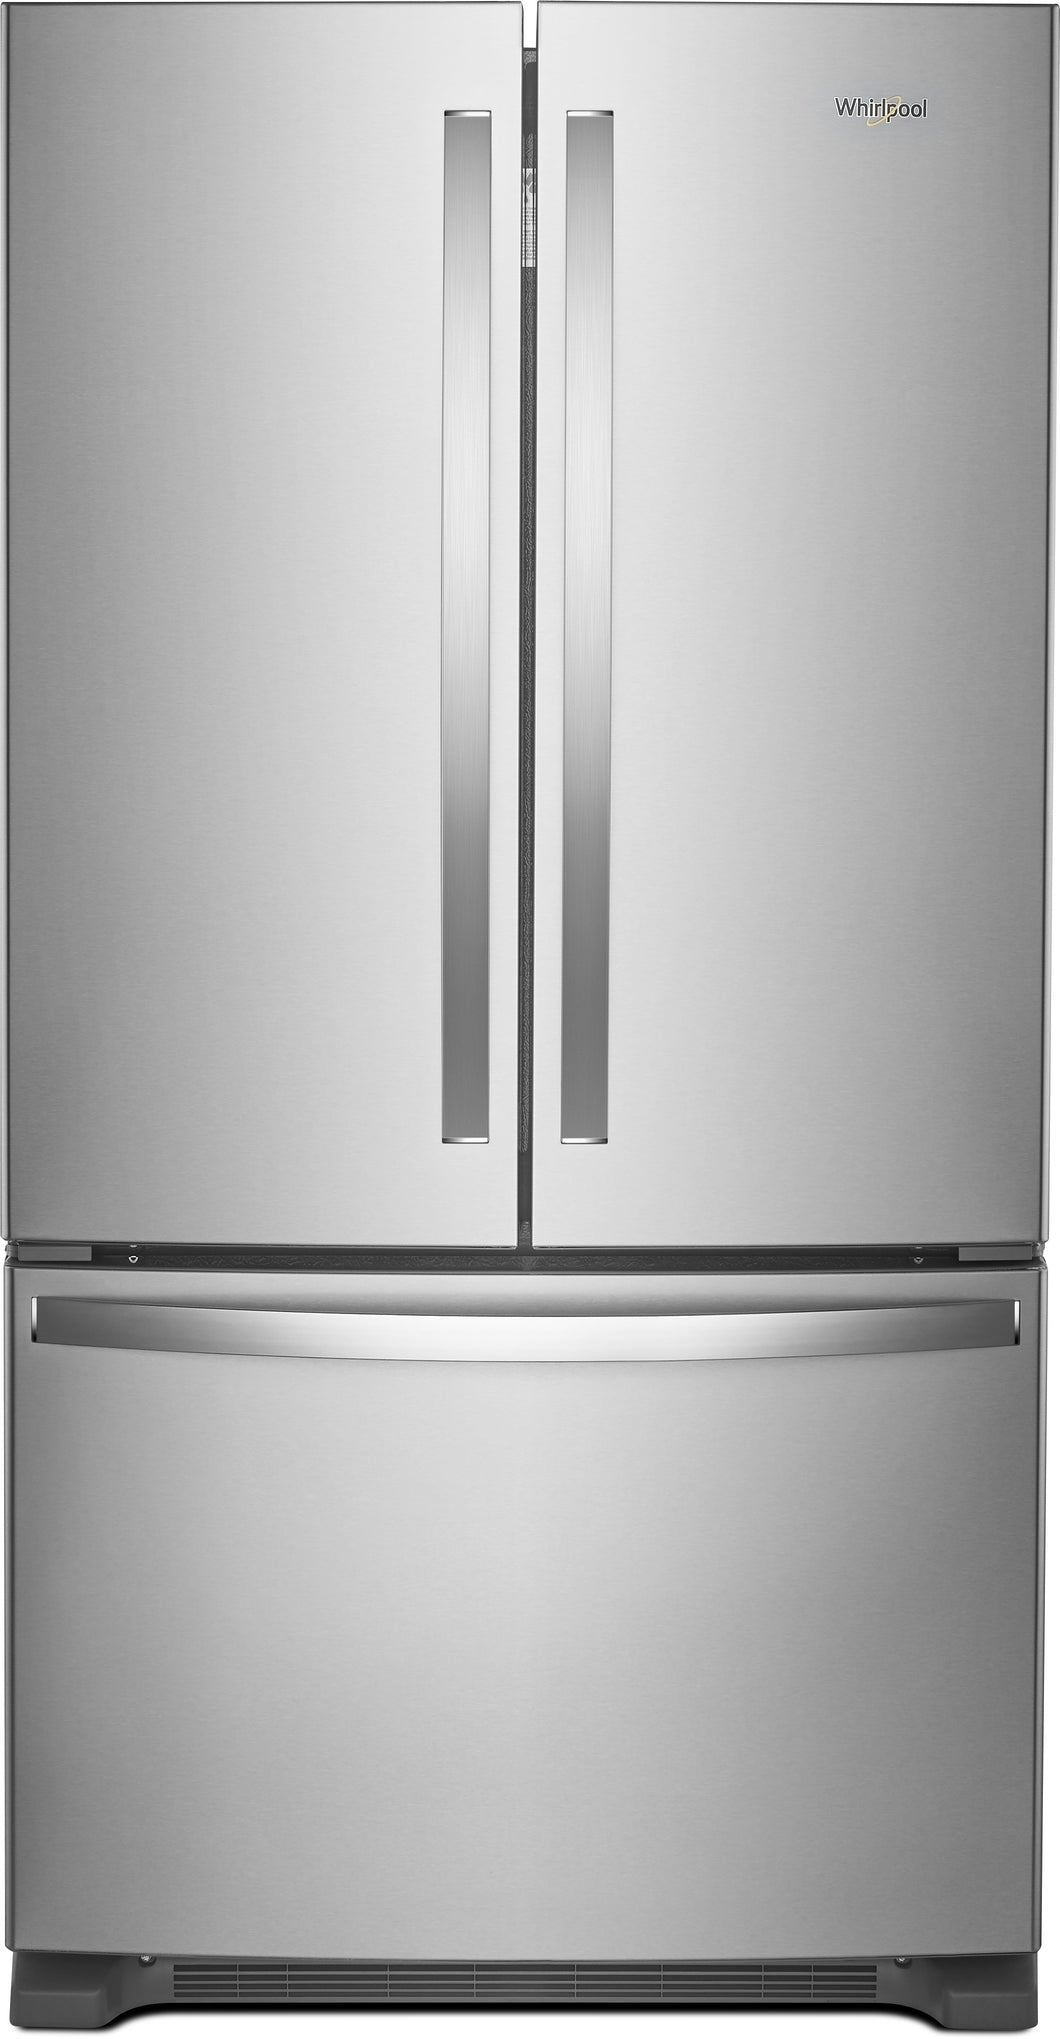 Whirlpool - 25 Cu. Ft. French Door Refrigerator with Interior Water Dispenser - WRF535